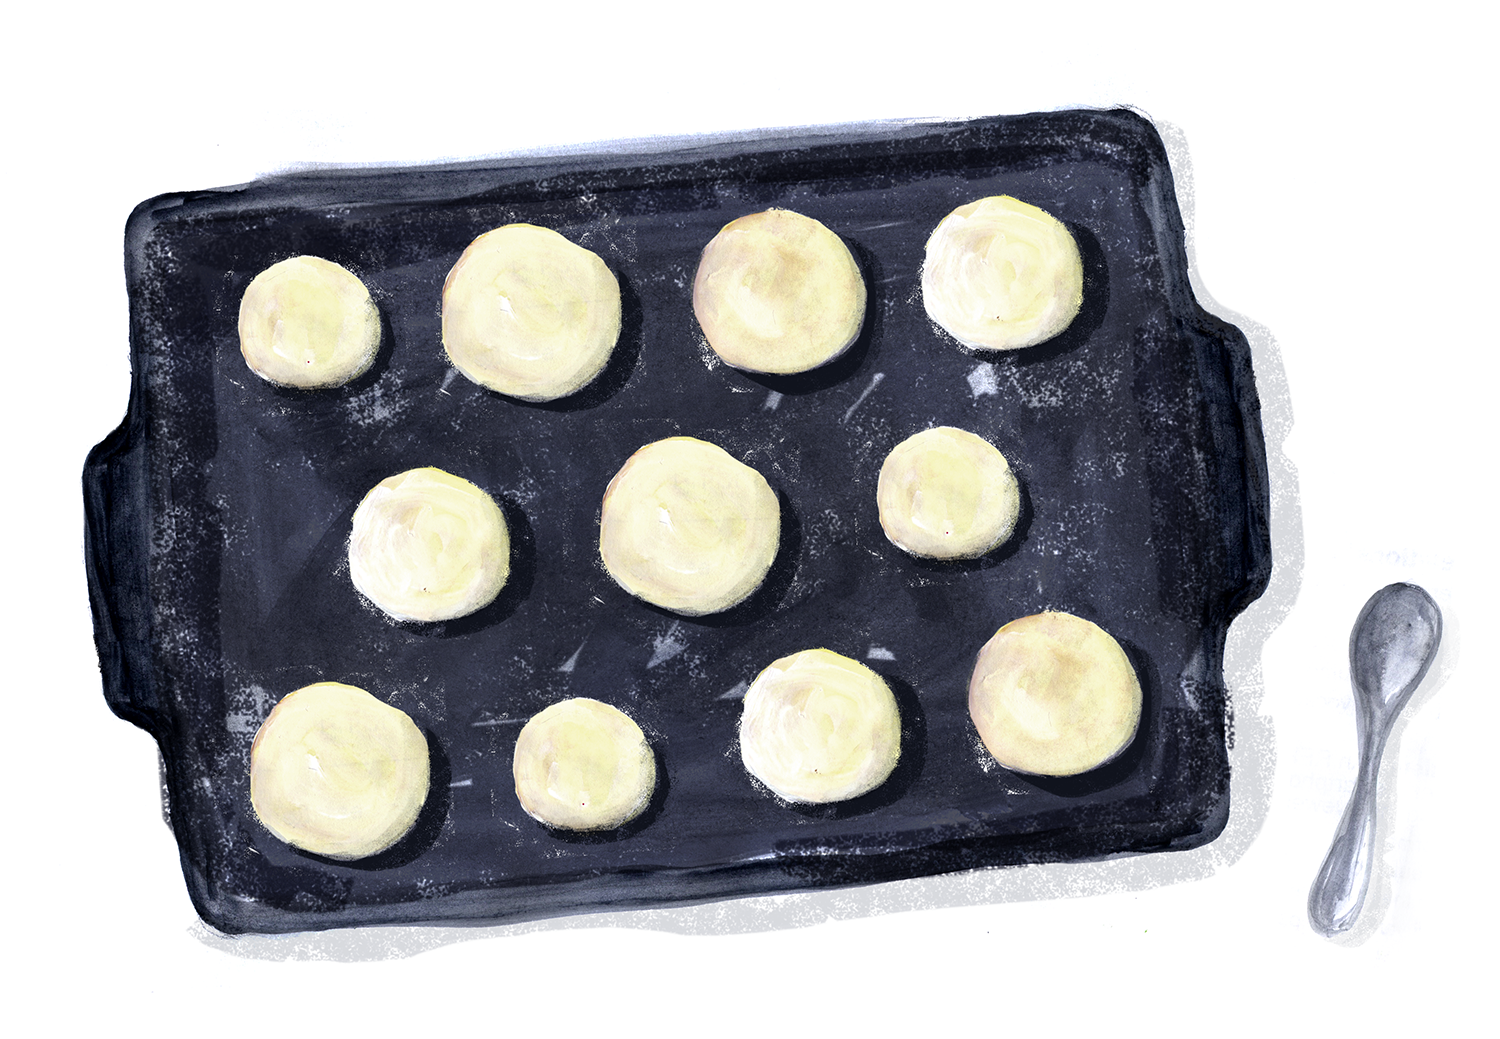 Anise Cookies, Anesplatzchen, Lauren Monaco Illustration